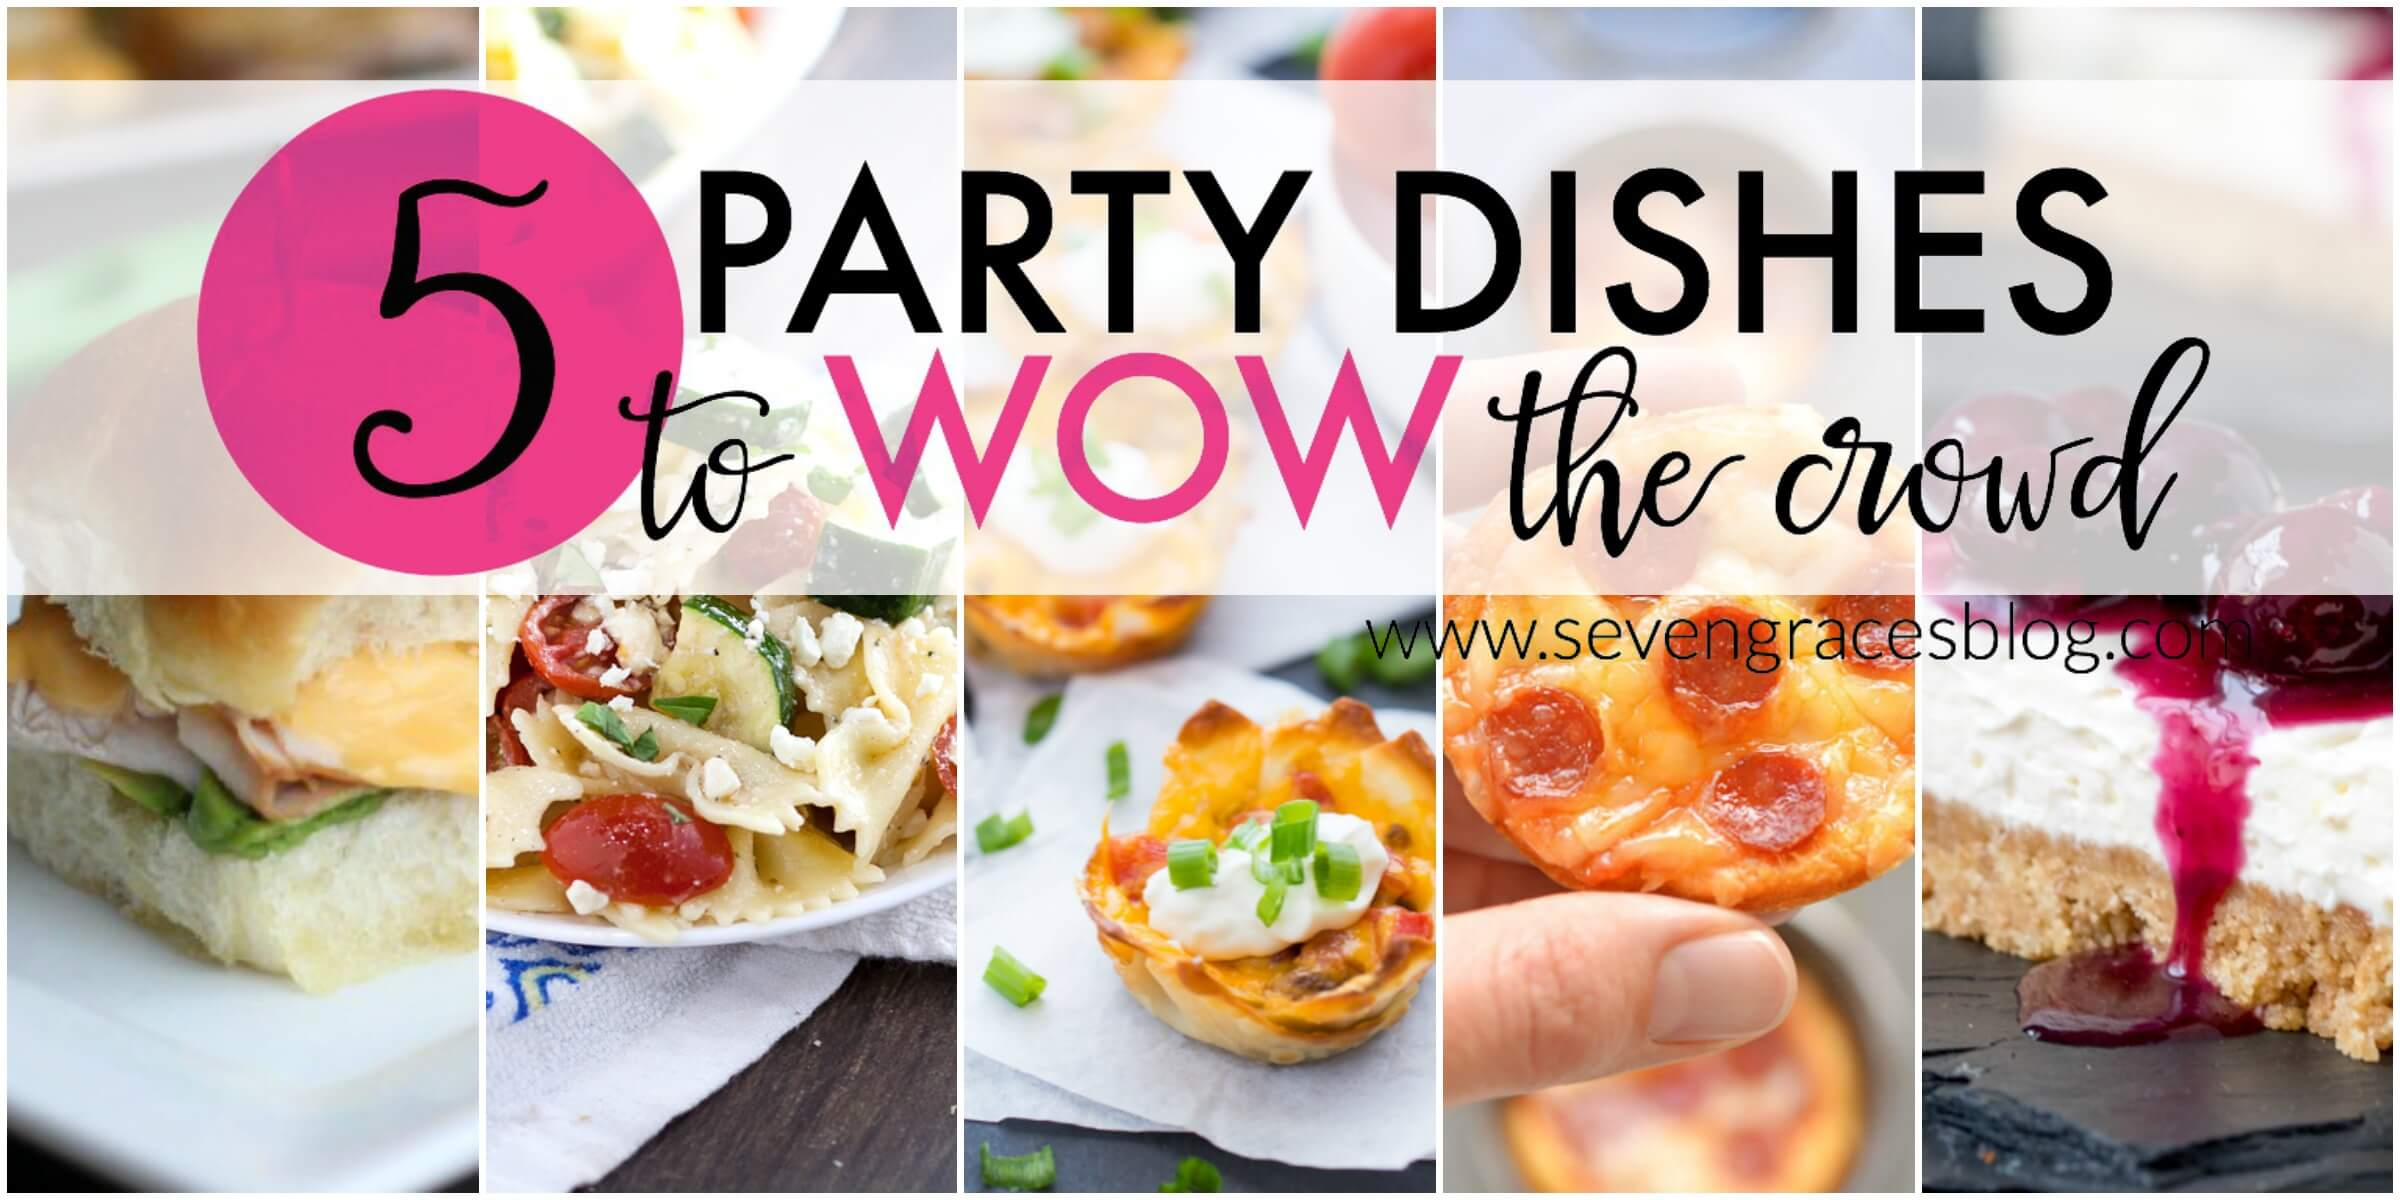 5 Party Dishes to Wow the Crowd: A Little Bird Told Me Link Party | Vol. 5